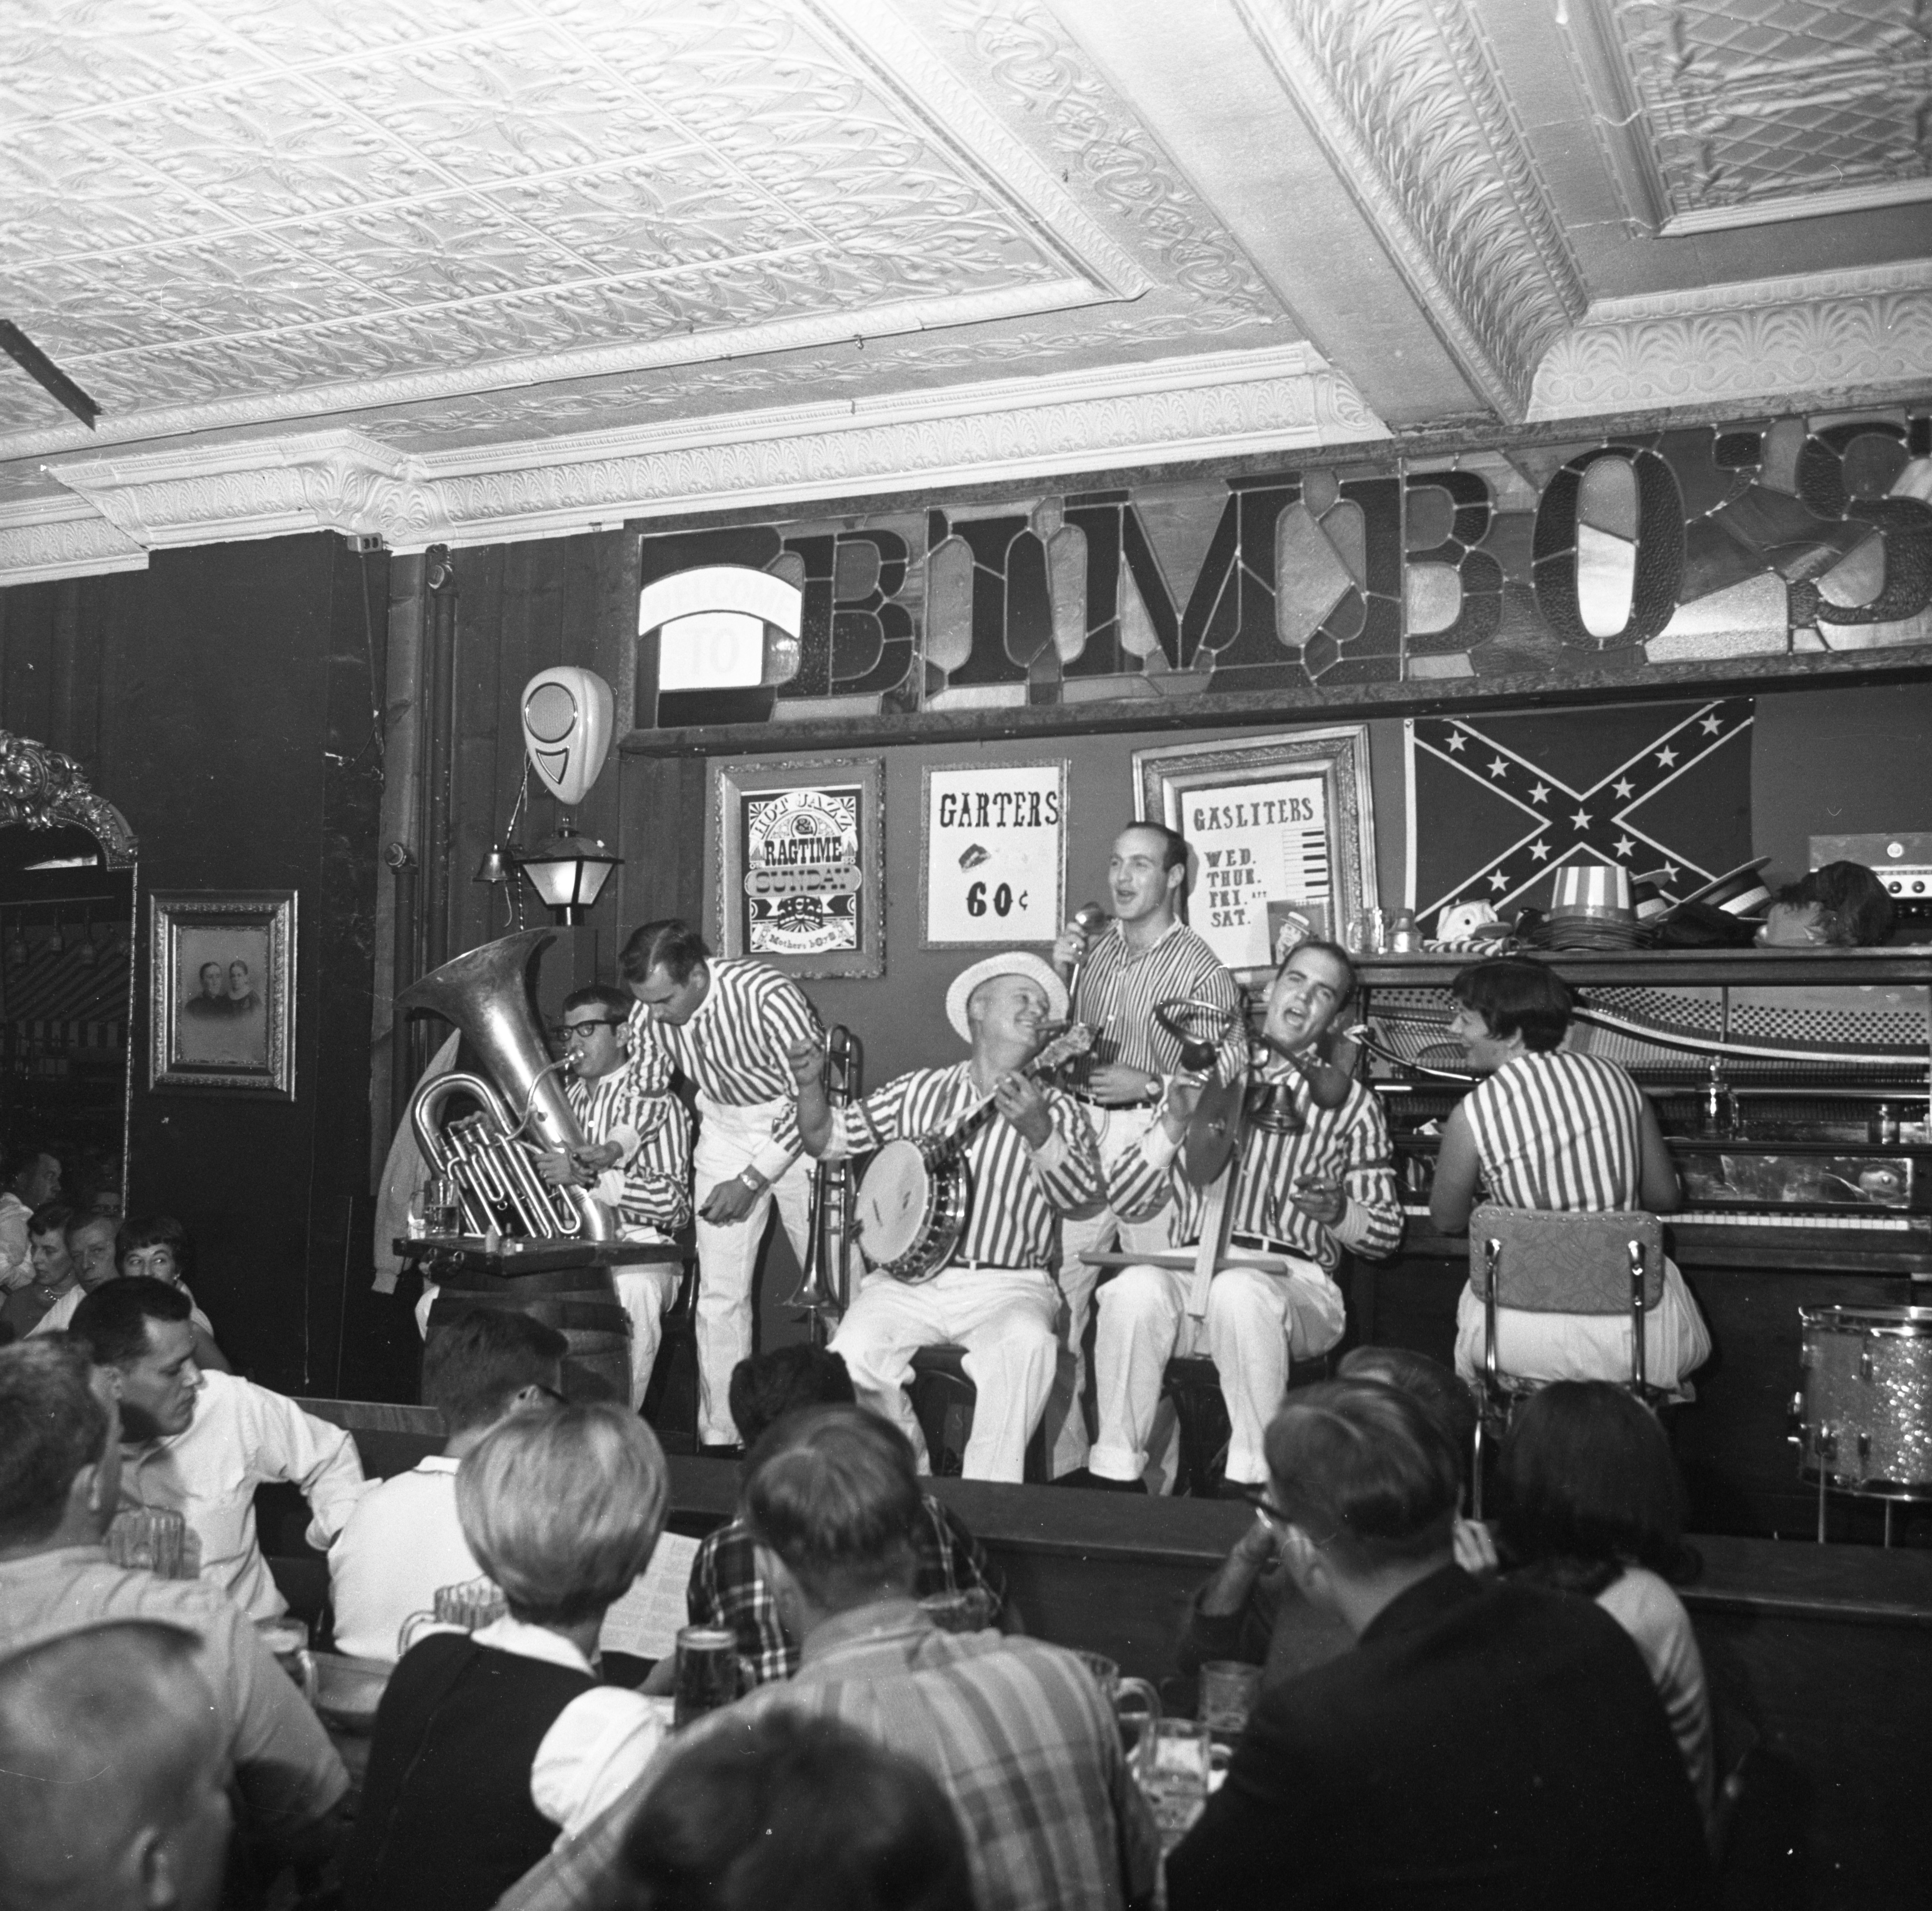 Rich Bloch & The Gasliters Perform At Bimbo's, September 1966 image